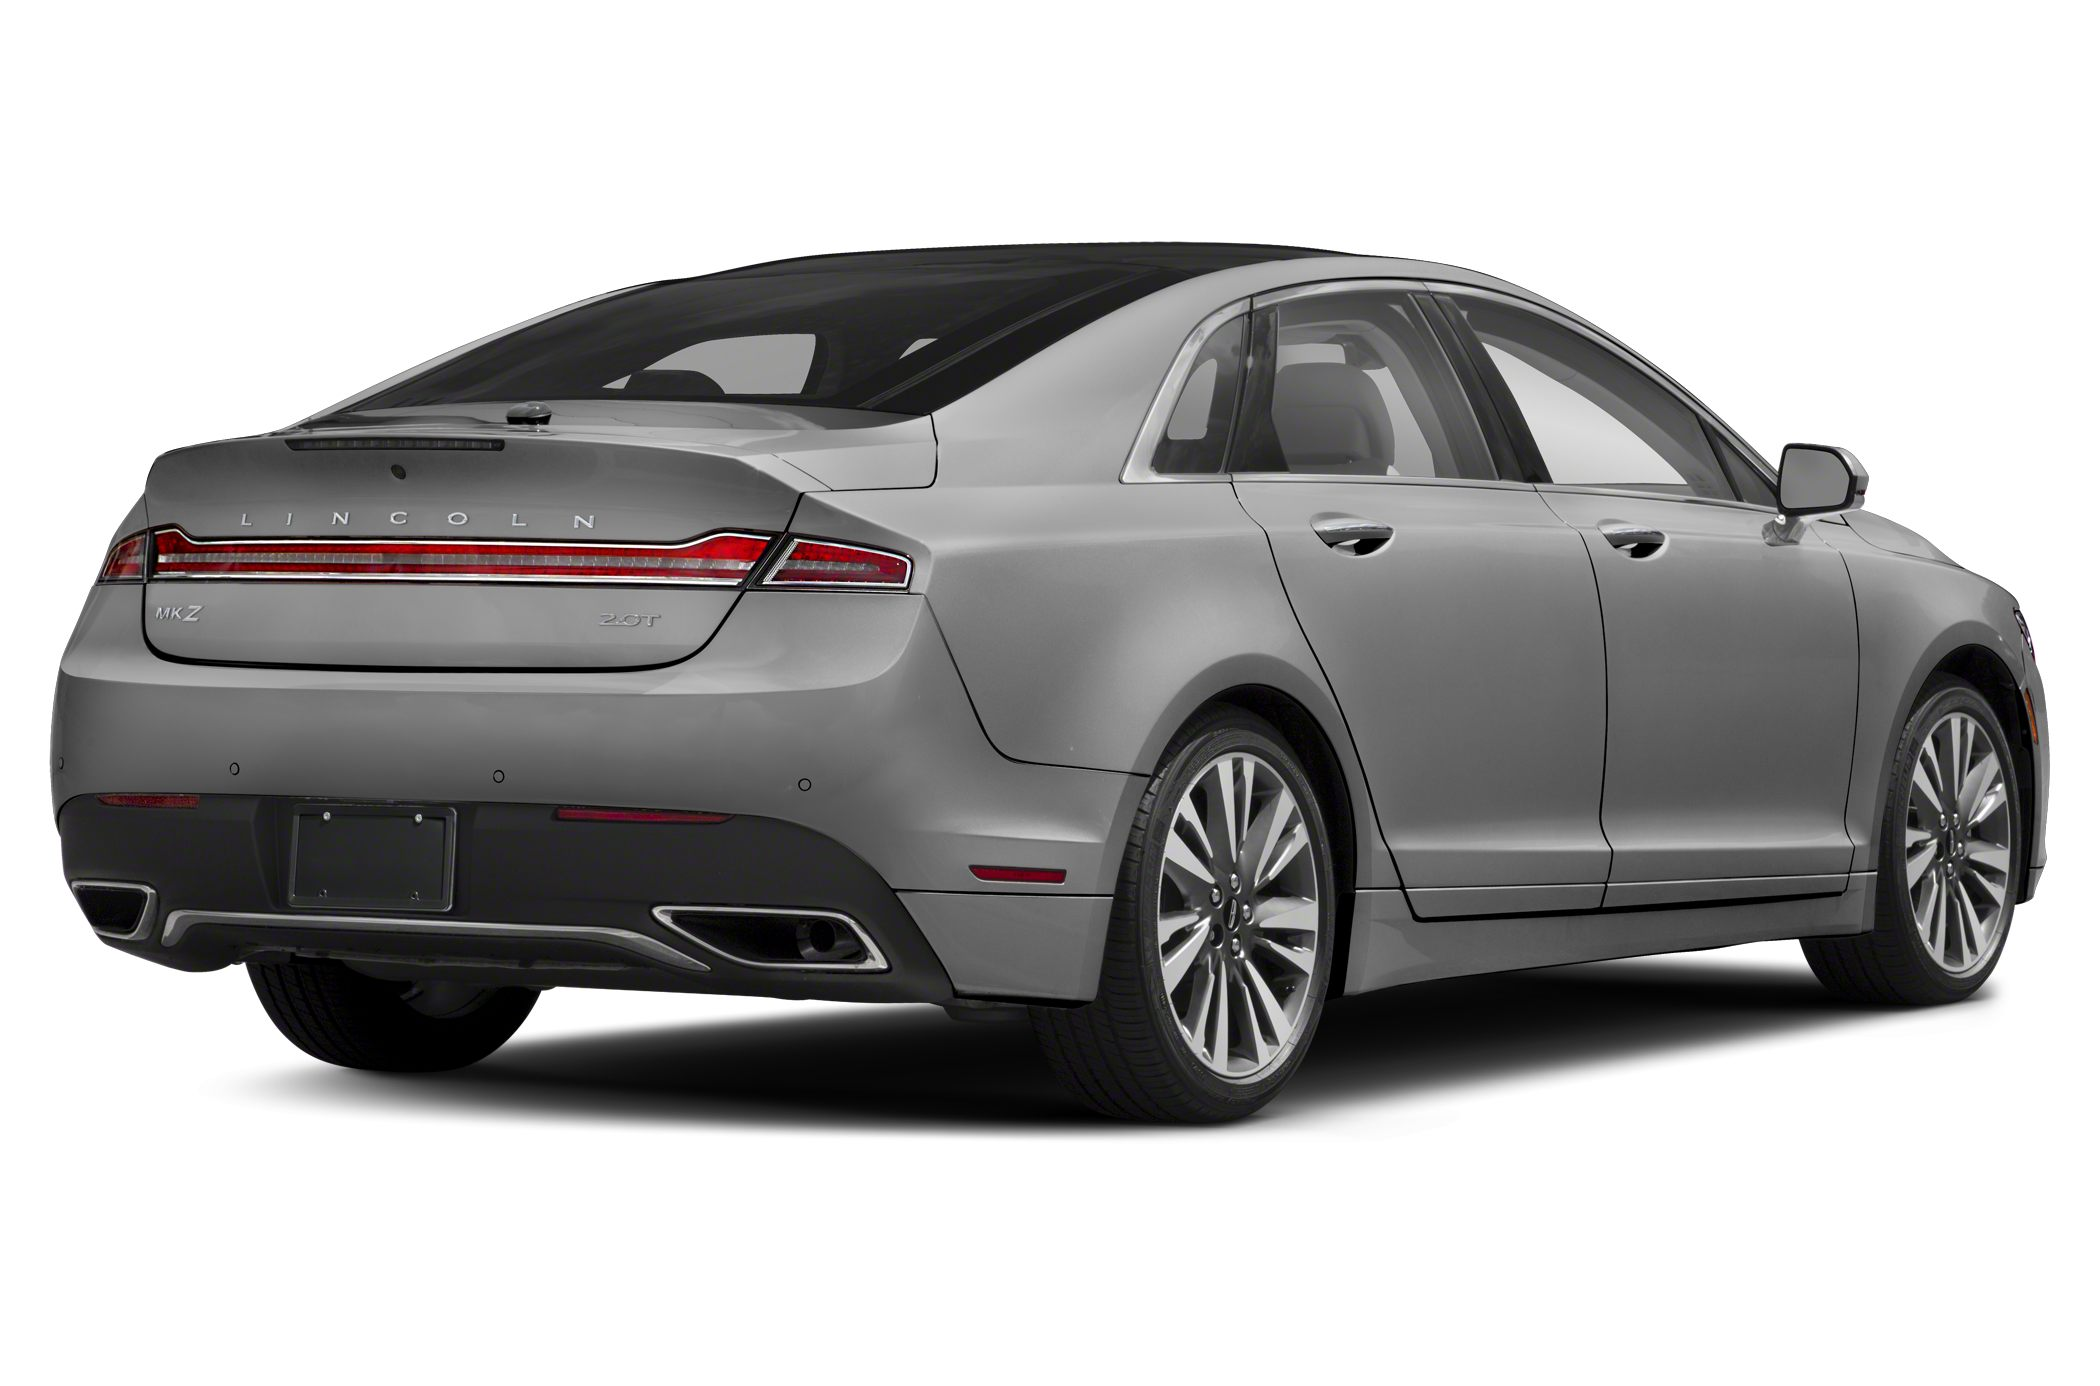 2018 Lincoln MKZ Deals, Prices, Incentives & Leases ...